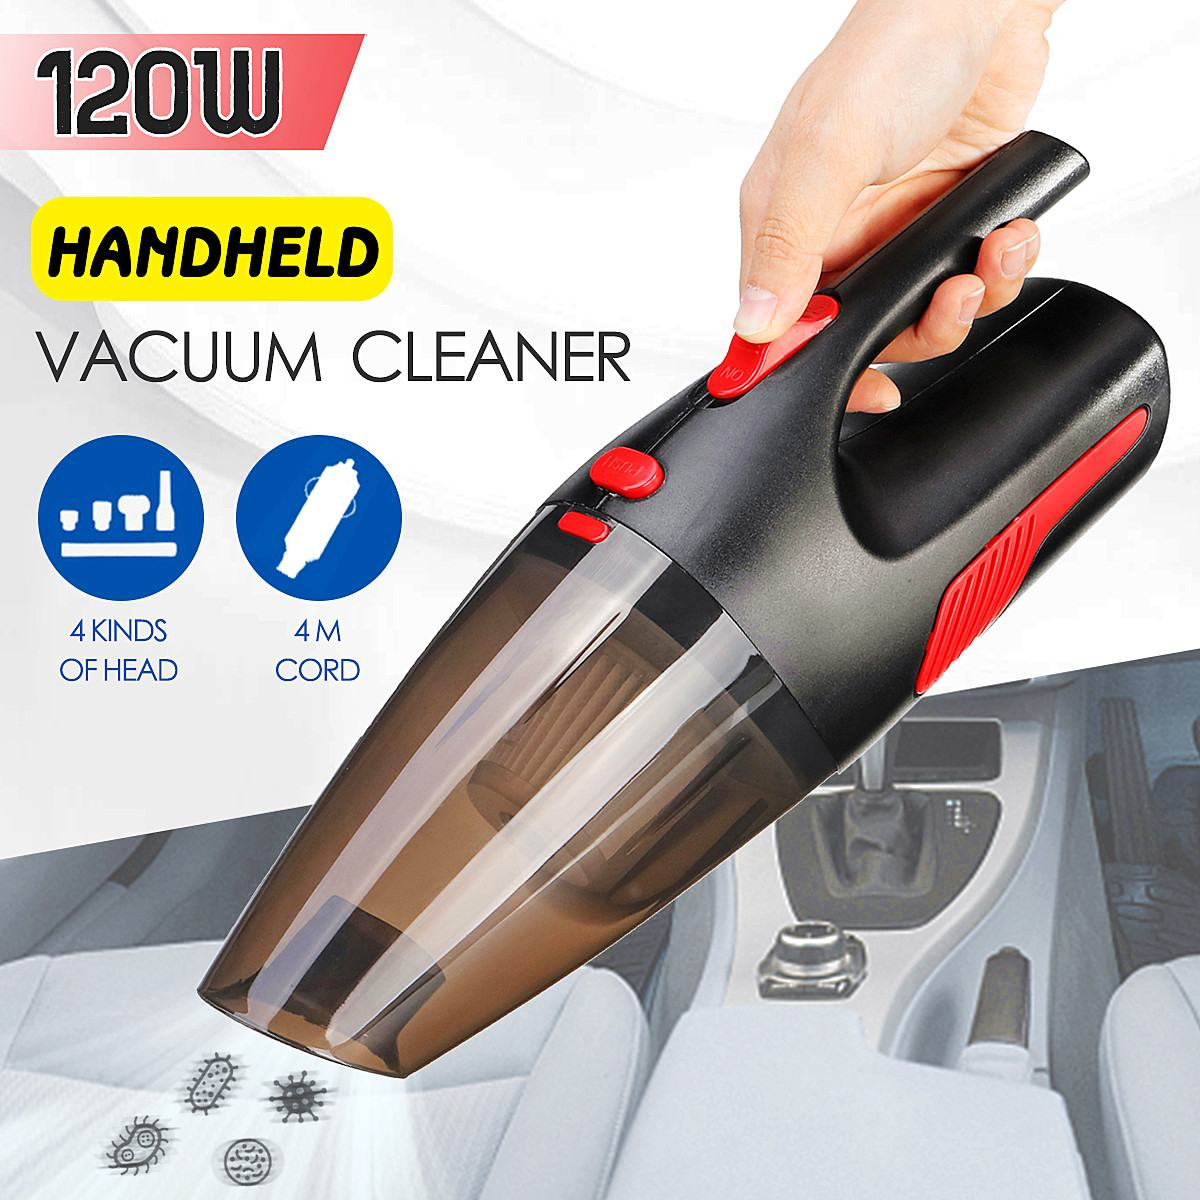 Portable 4m Cord Length Handheld Car Vacuum Cleaner Wet/Dry Vaccum Cleaner For Car Home 120W 12V 5000PA